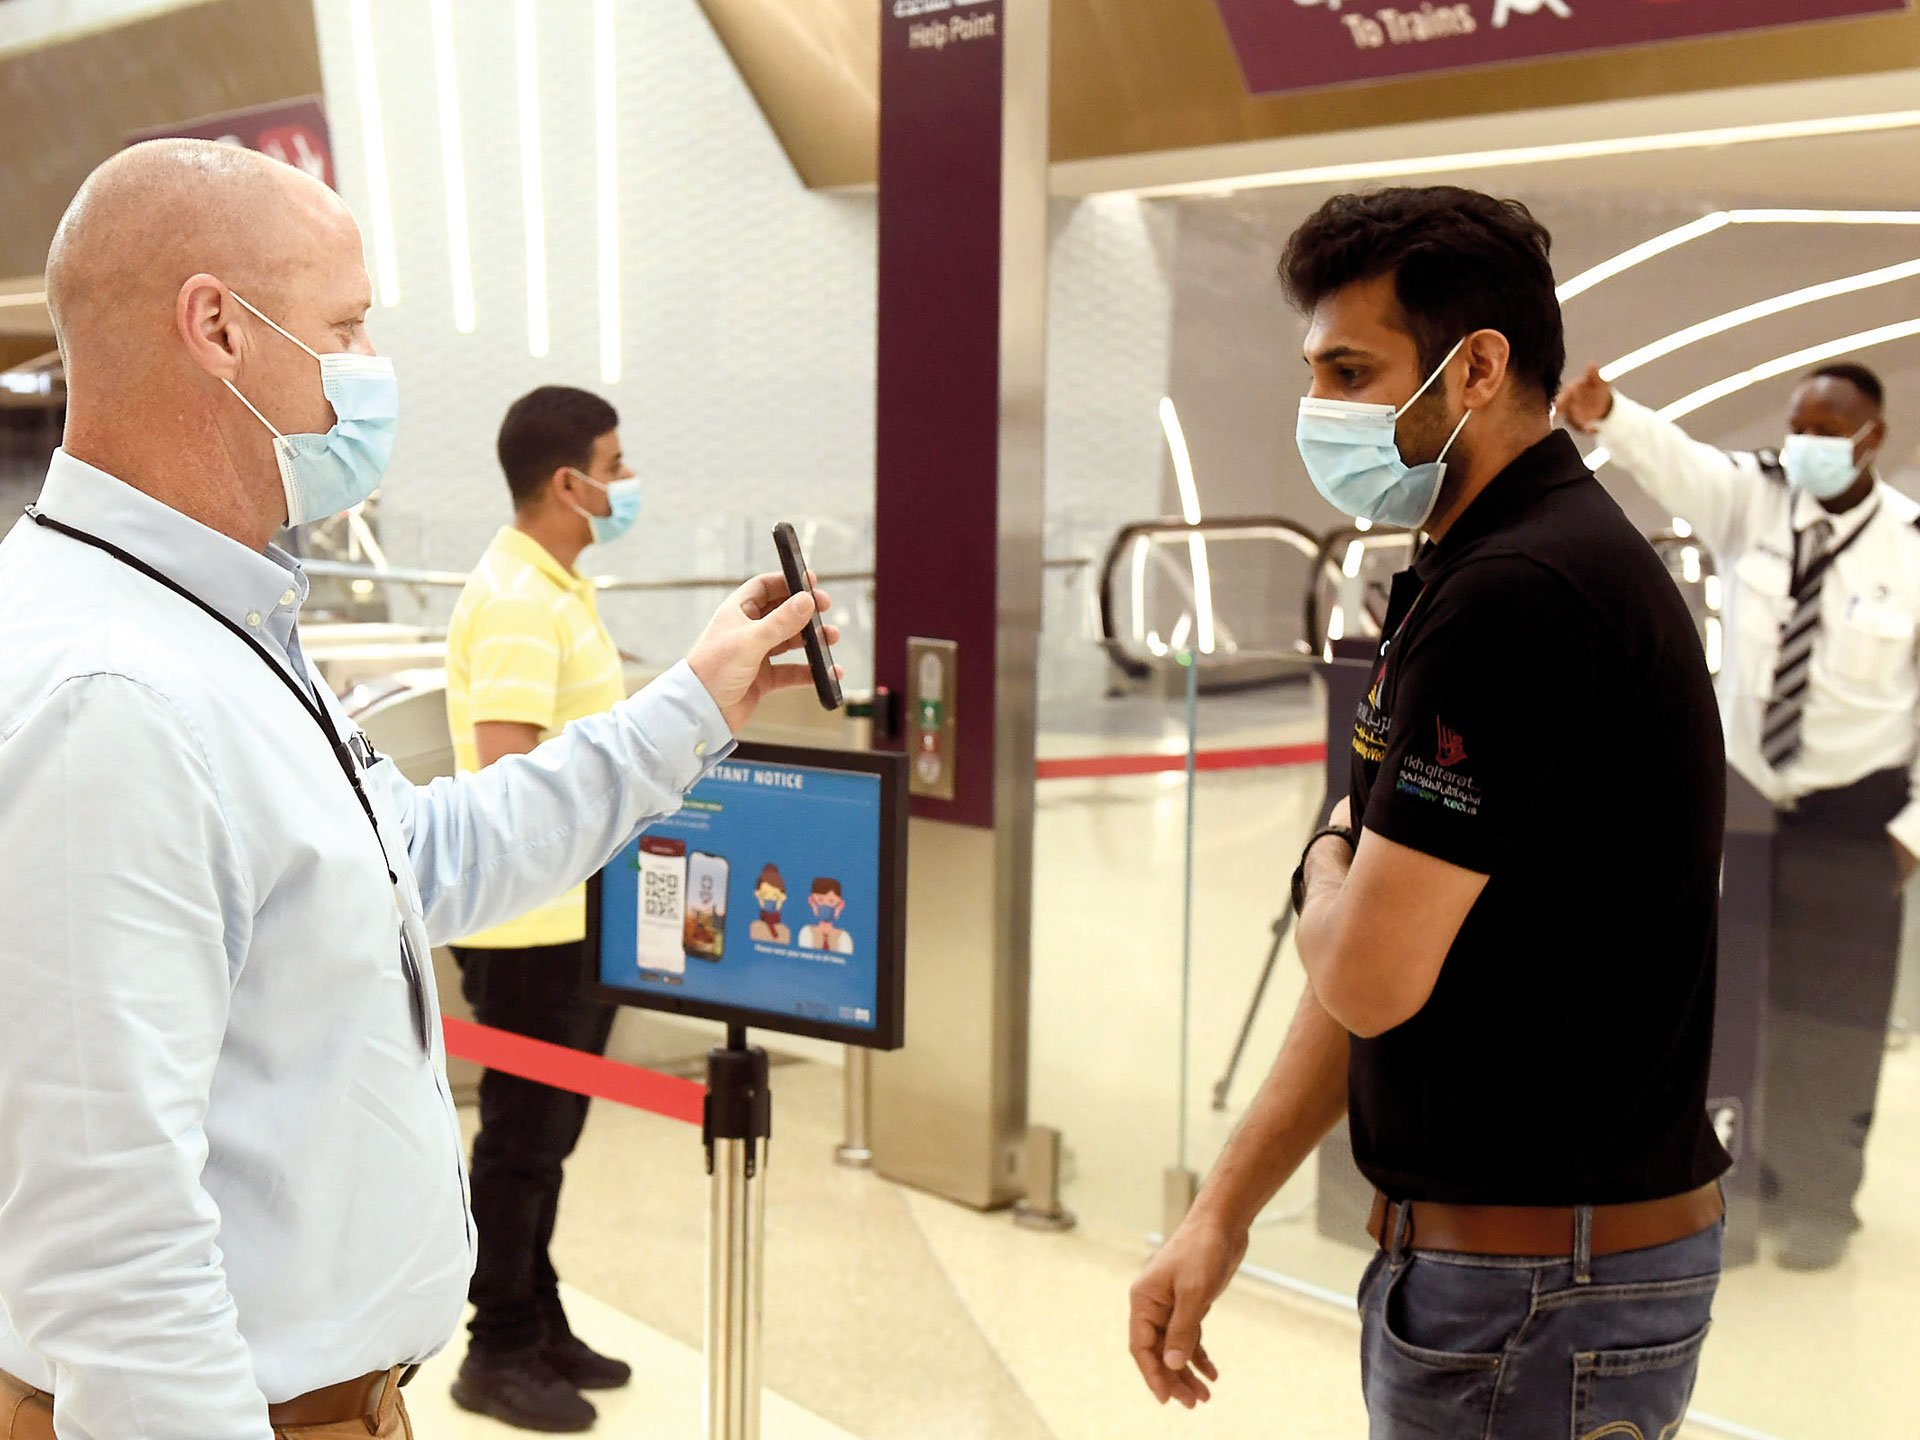 Hundreds of citizens and residents flocked to The Doha Metro on the first day of the resumption of operations